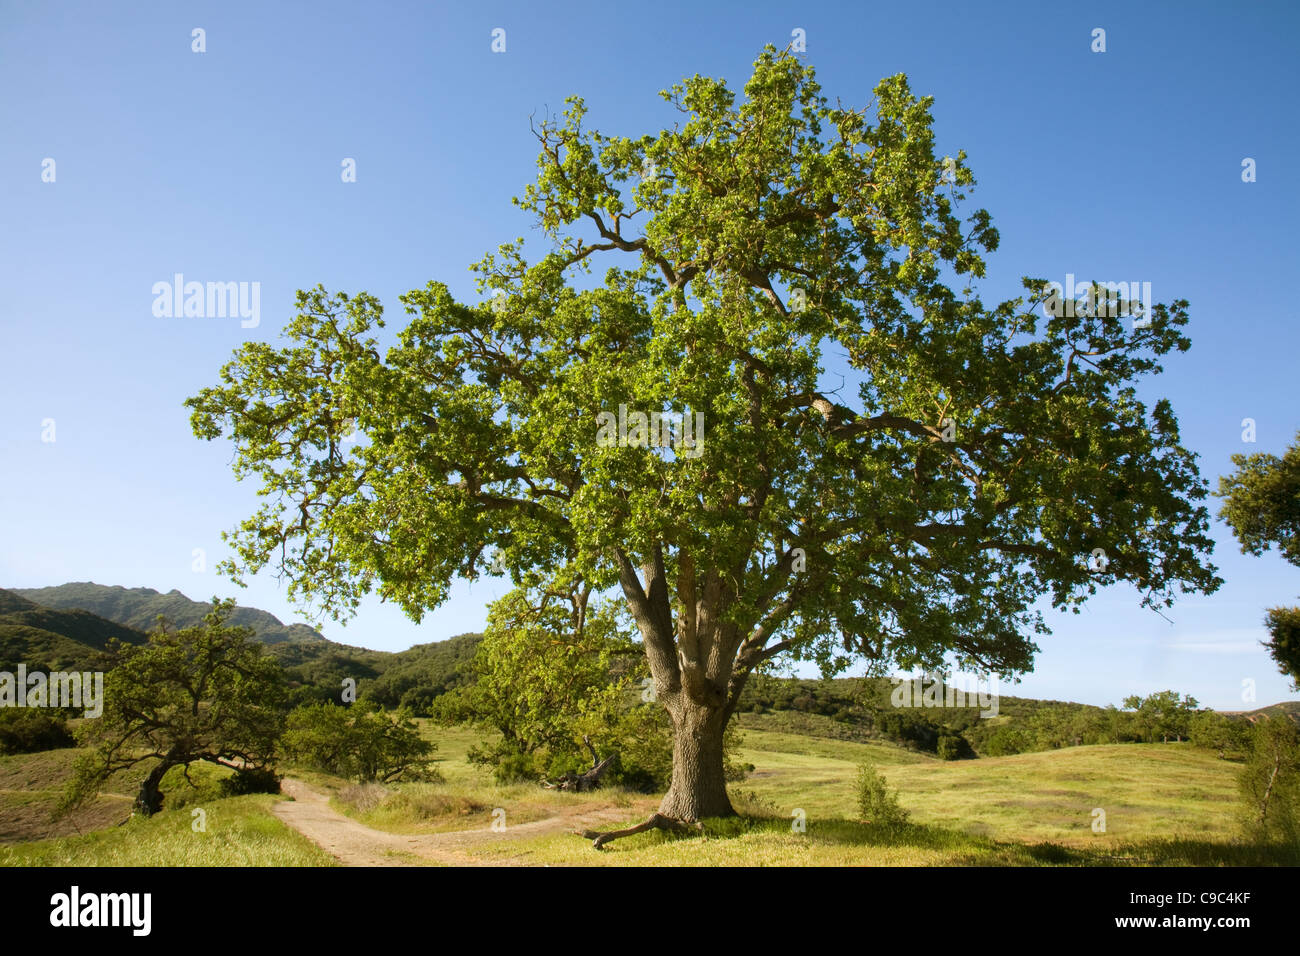 CALIFORNIA - Oak tree at Paramount Ranch in the Santa Monica Mountains National Recreation Area. - Stock Image